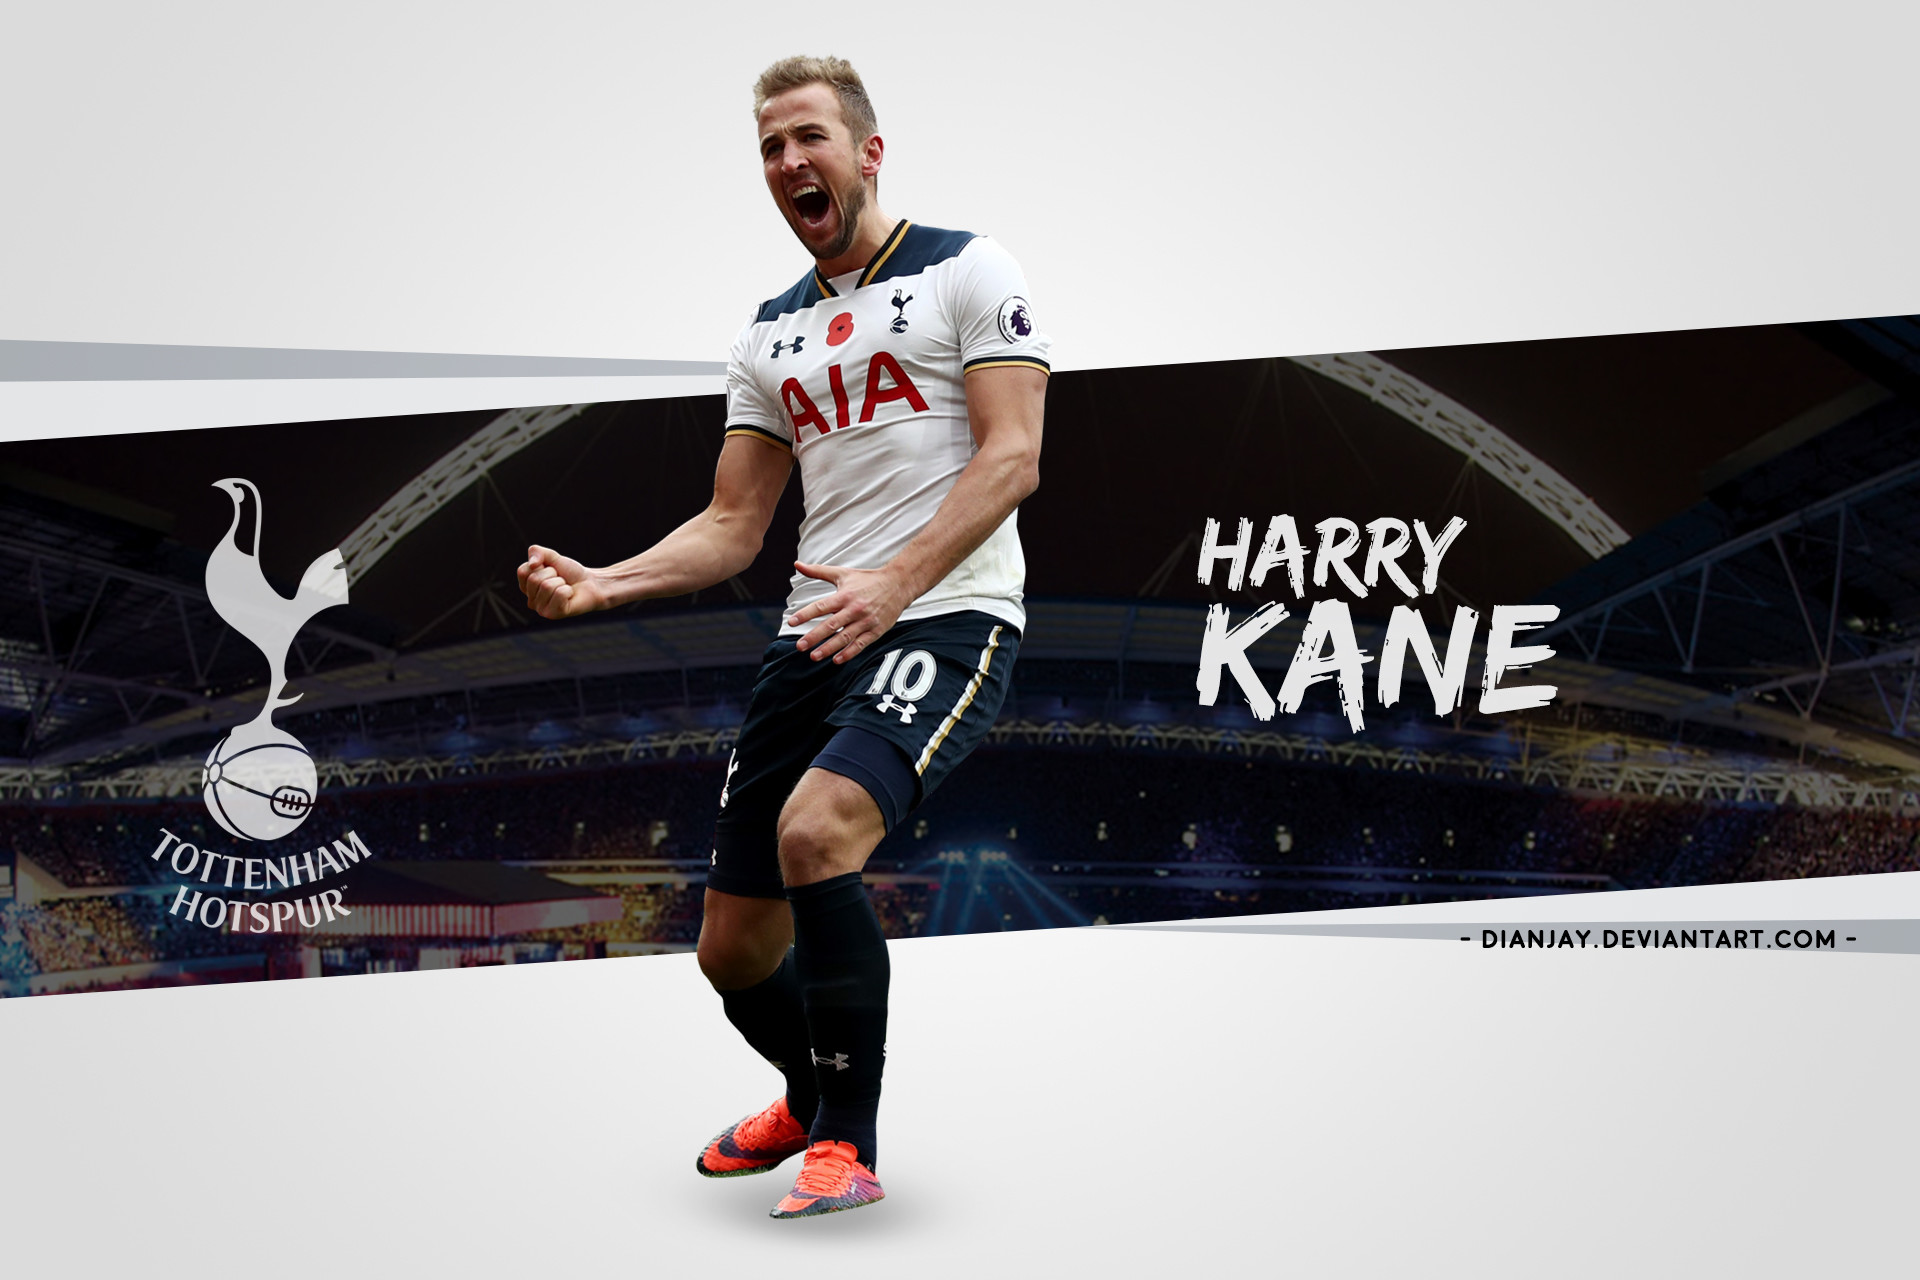 1920x1280 ... Harry Kane 2017/18 Wallpaper Desktop by dianjay